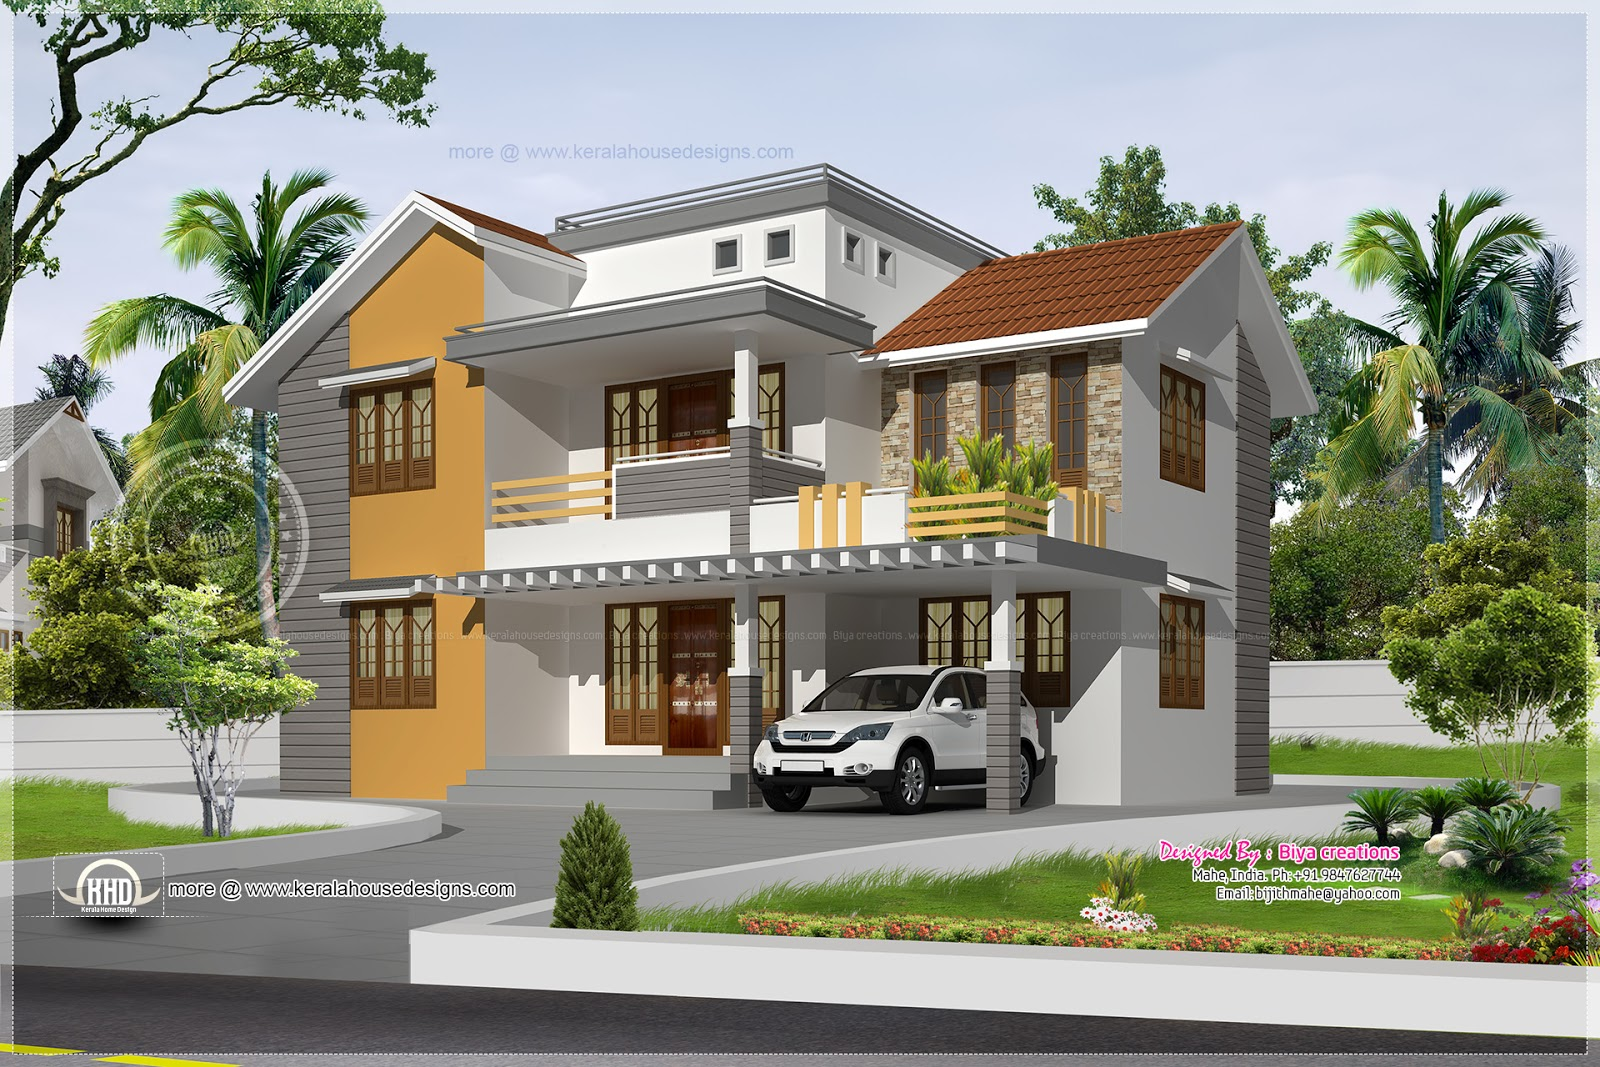 June 2013 kerala home design and floor plans for House outlook design ideas